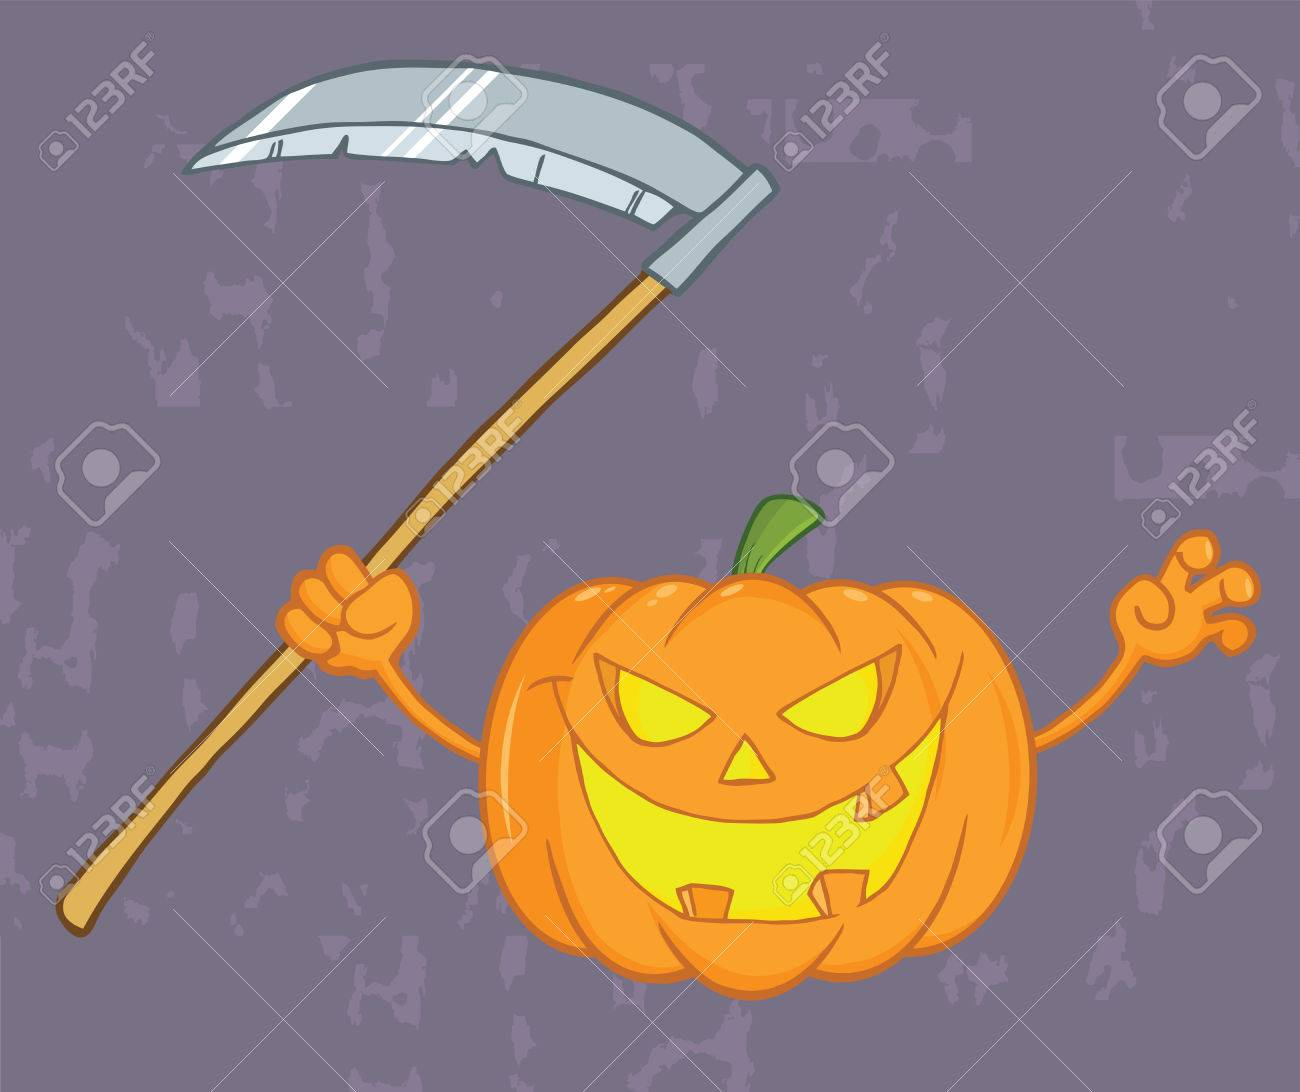 Scaring Halloween Pumpkin With A Scythe And Grunge Background Stock Vector